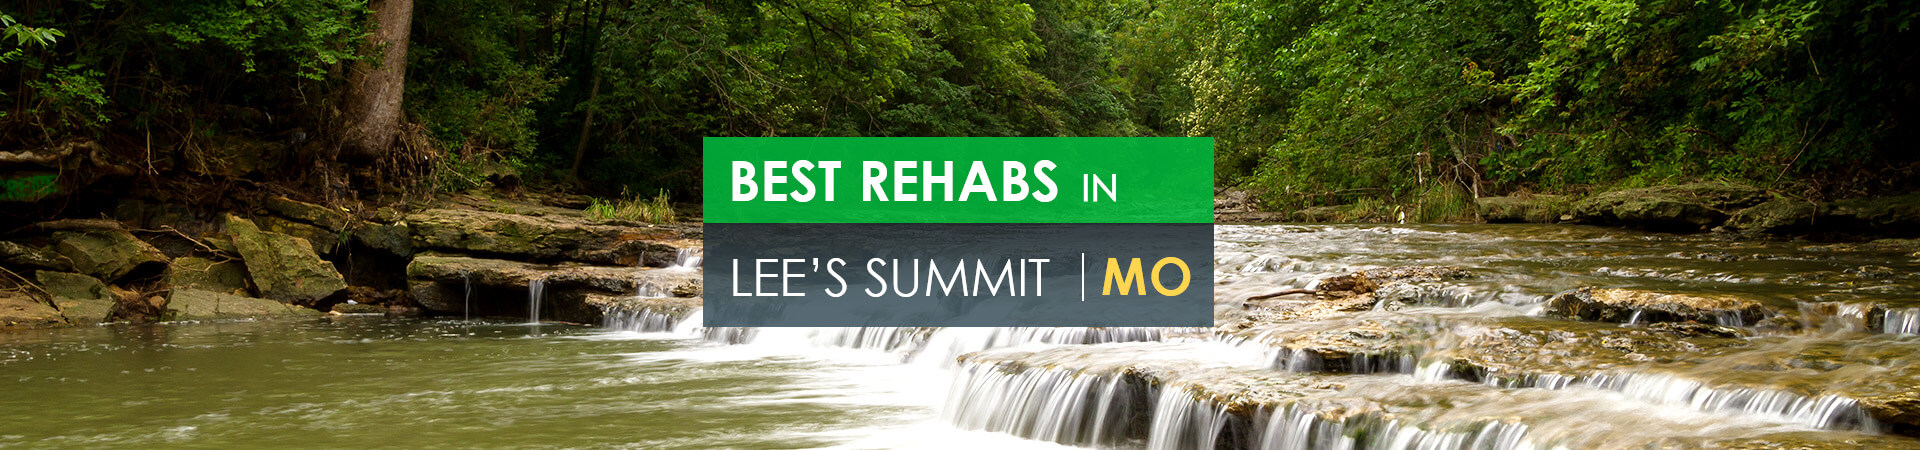 Best rehabs in Lees Summit, MO